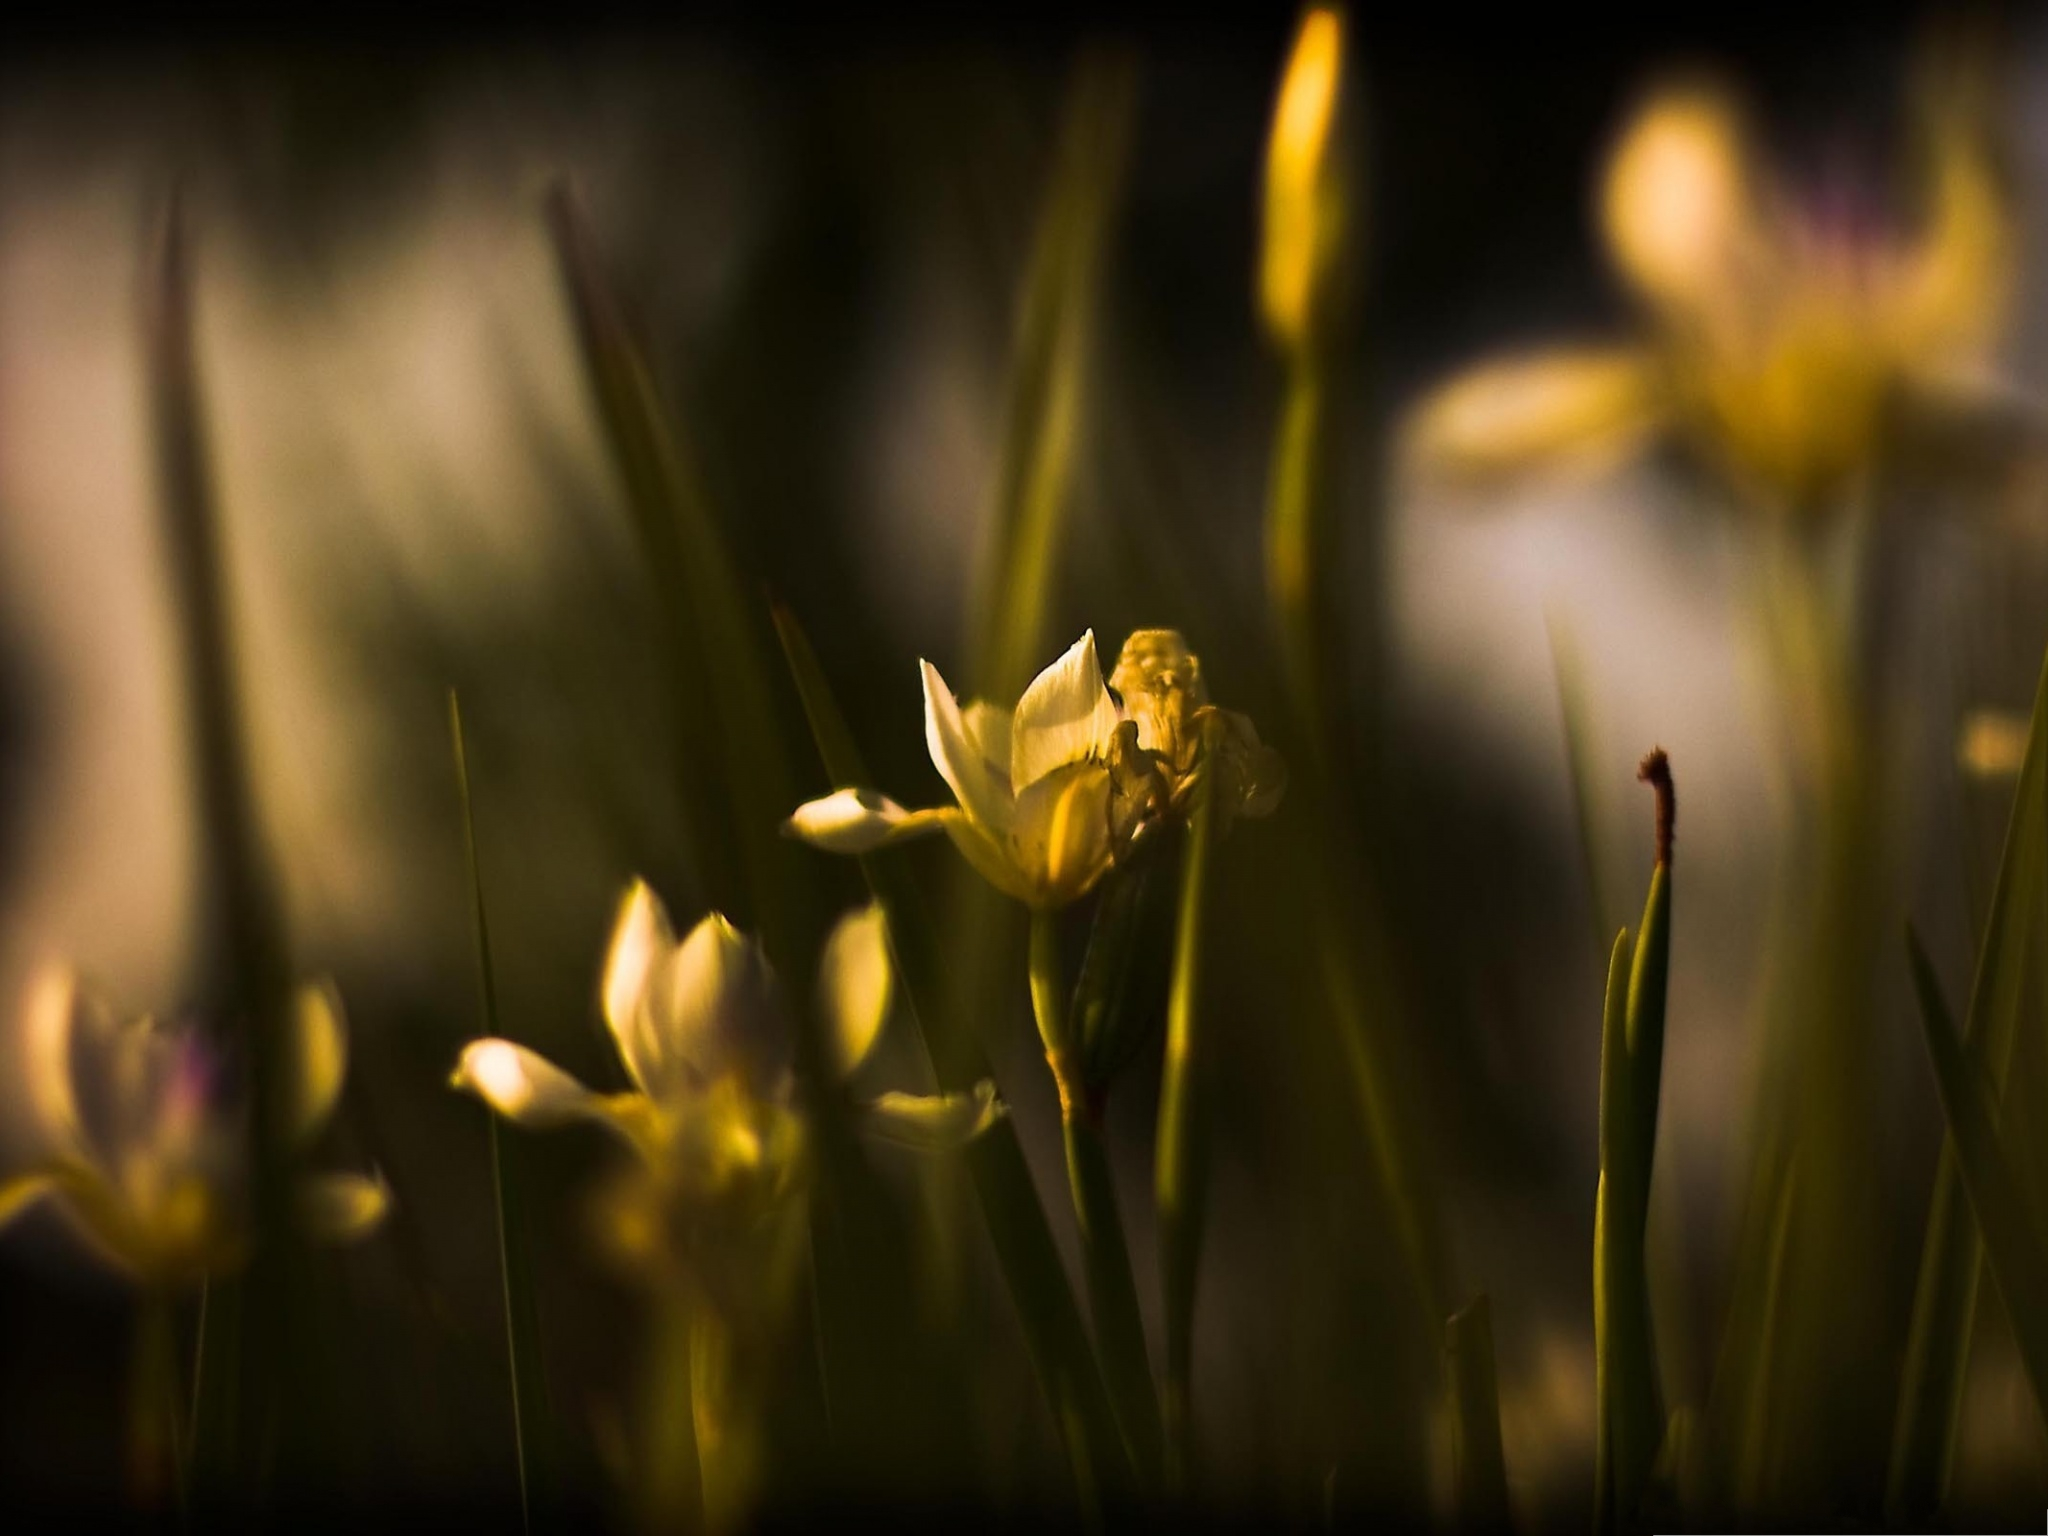 click to free download the wallpaper--Withered Yellow Flowers, Blooming Flowers and Green Stamen, Amazing Scene 2048X1536 free wallpaper download